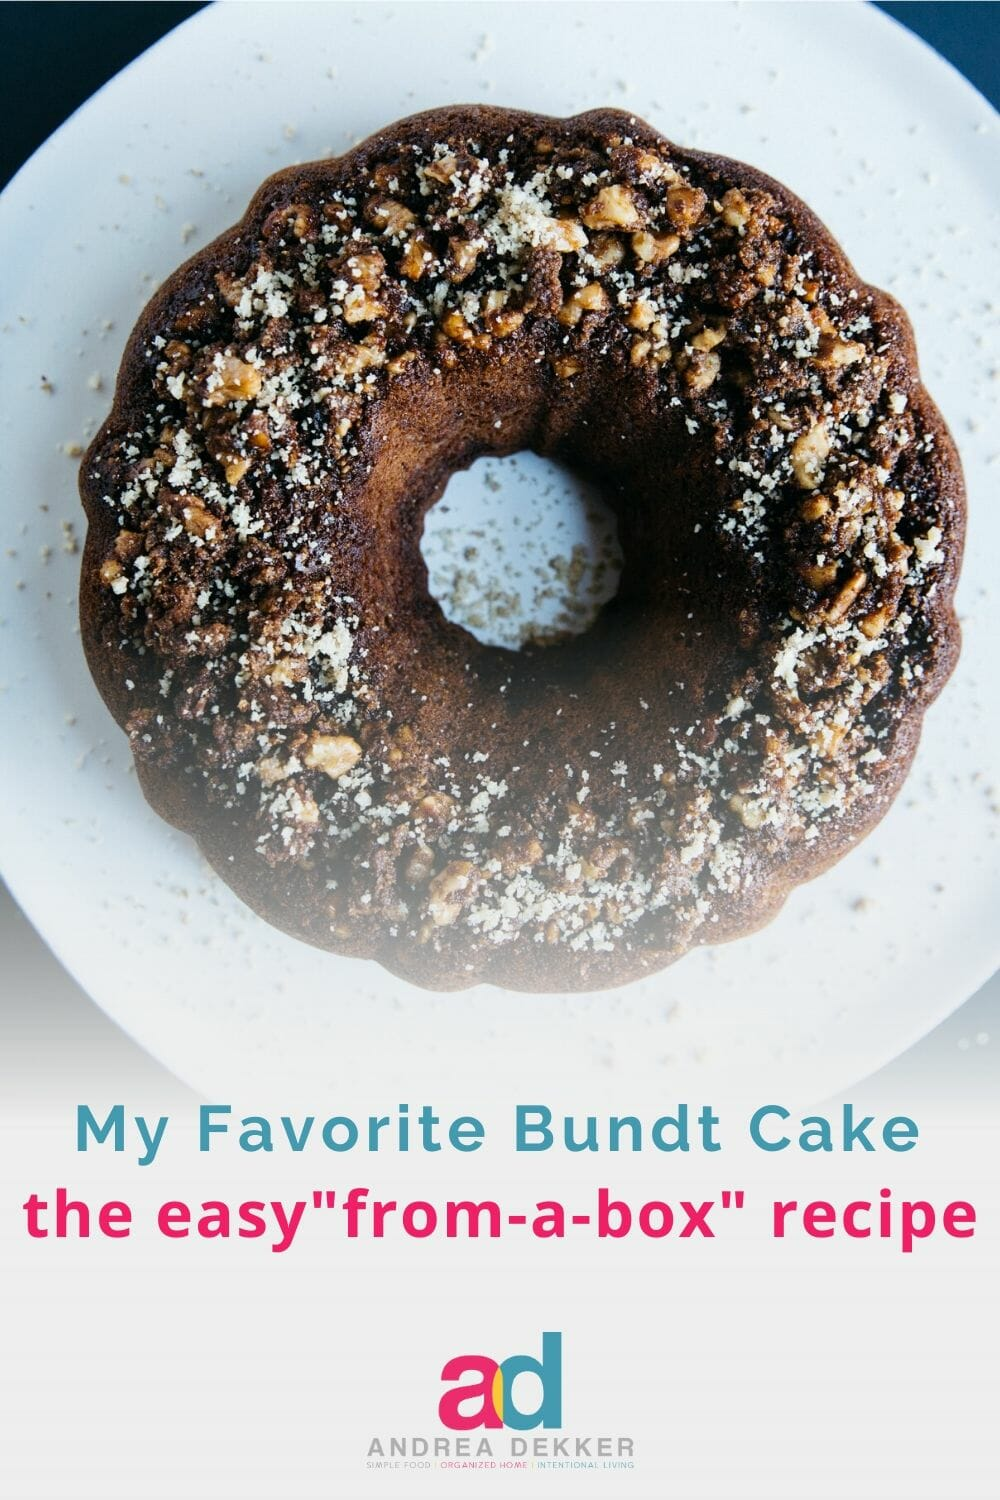 This easy bundt cake recipe is simple enough for kids to help, it can be tweaked based on your personal preferences (or whatever ingredients you have in the pantry), and it freezes wonderfully. It's basically the perfect sweet treat for any occasion! via @andreadekker